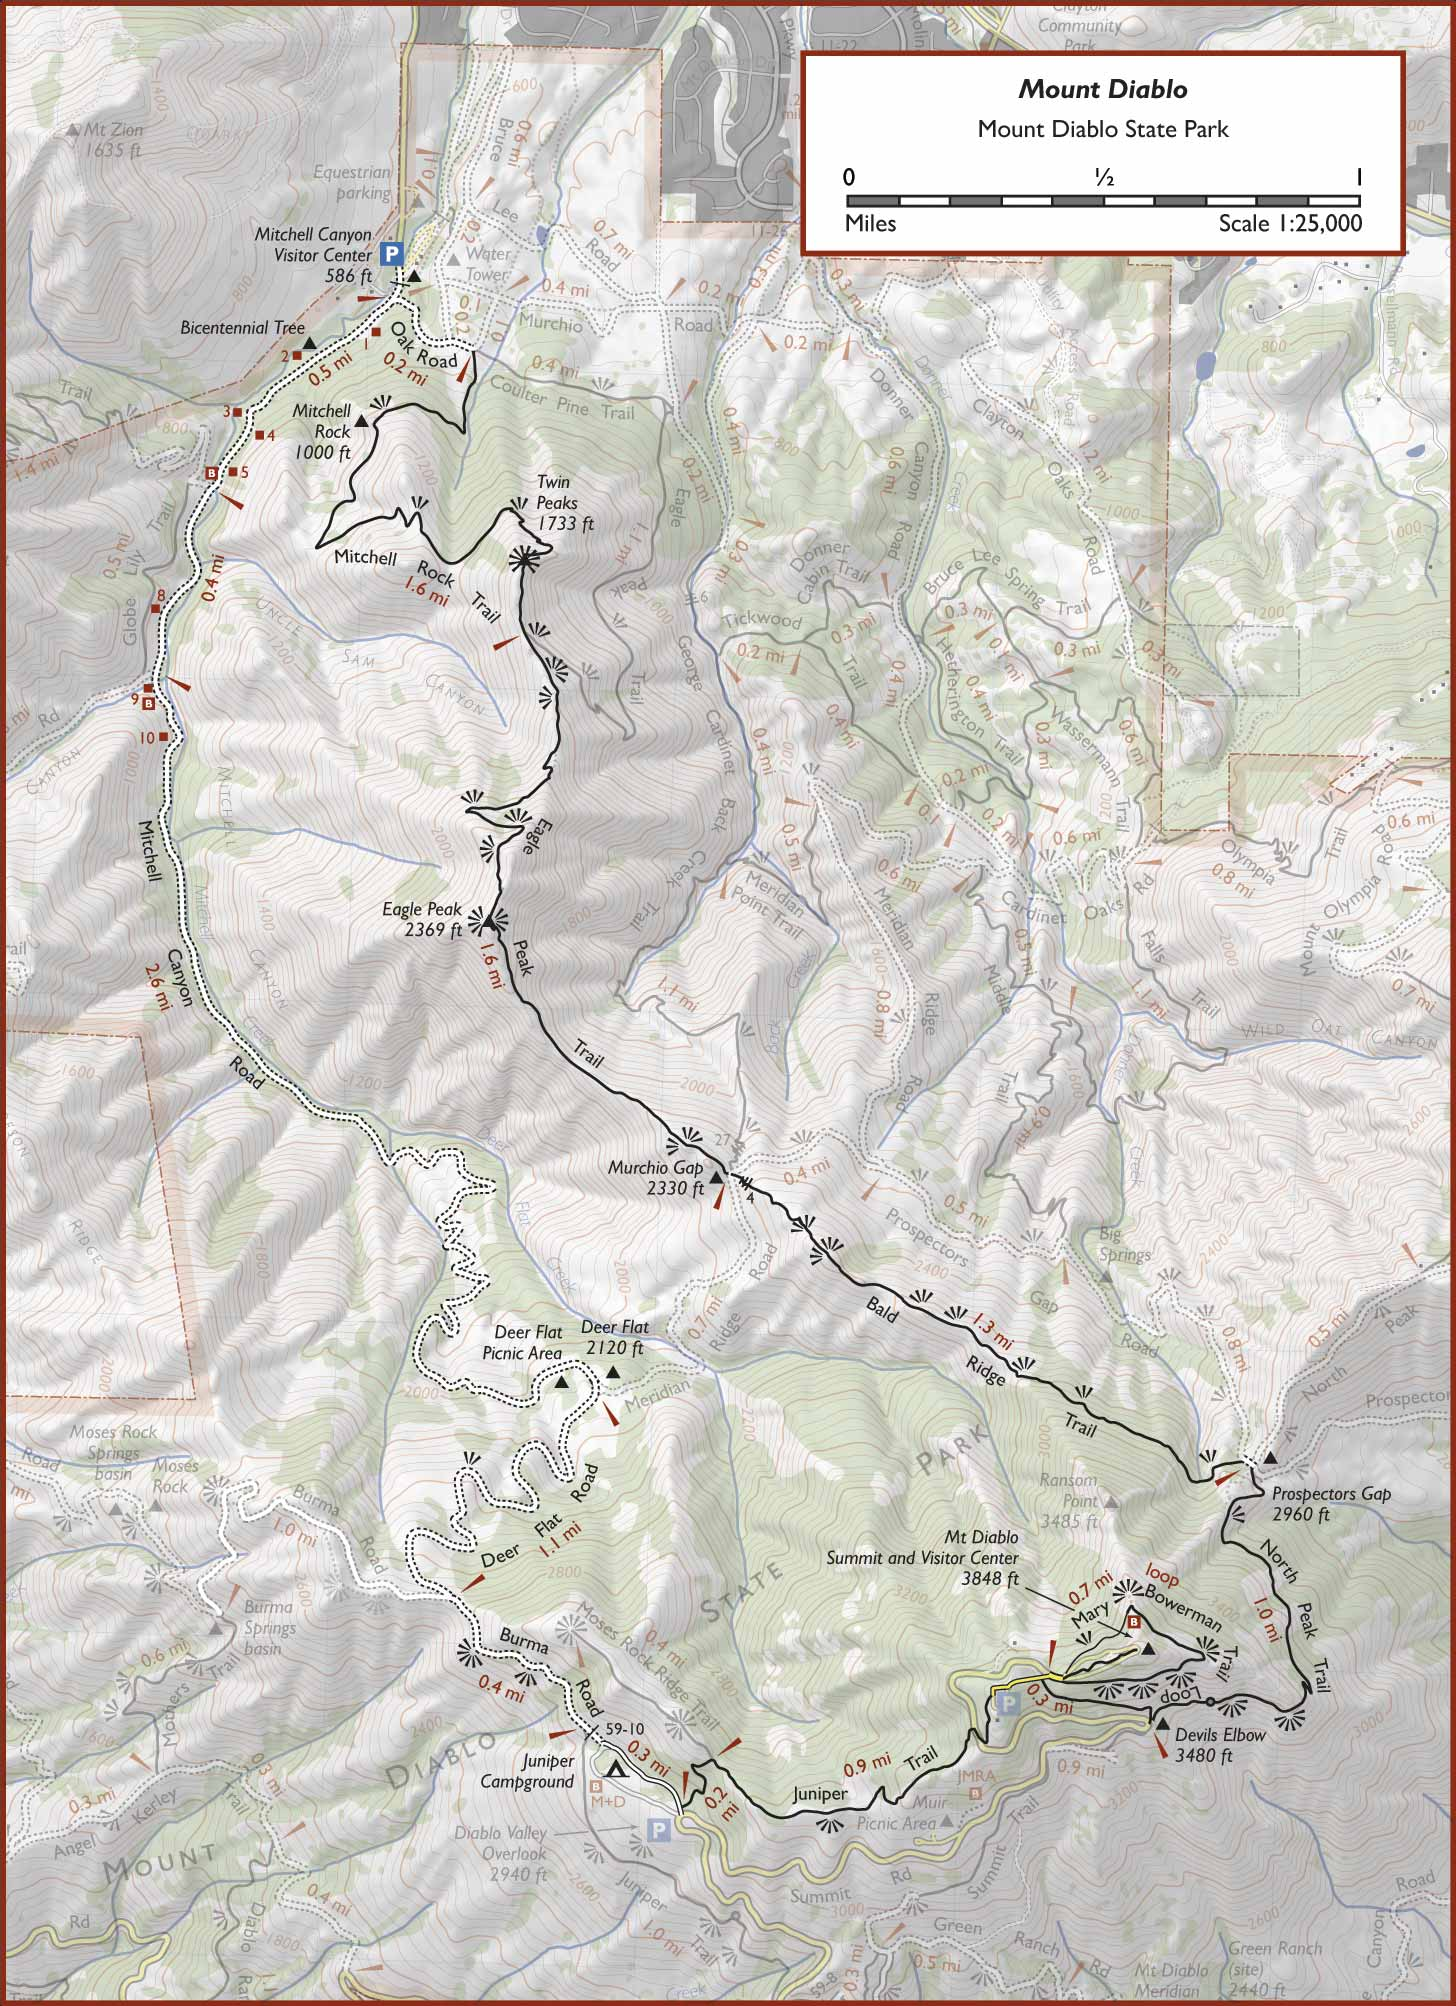 The network of trails ranges from wide fire roads to steep and narrow single track footpaths. Mount Diablo